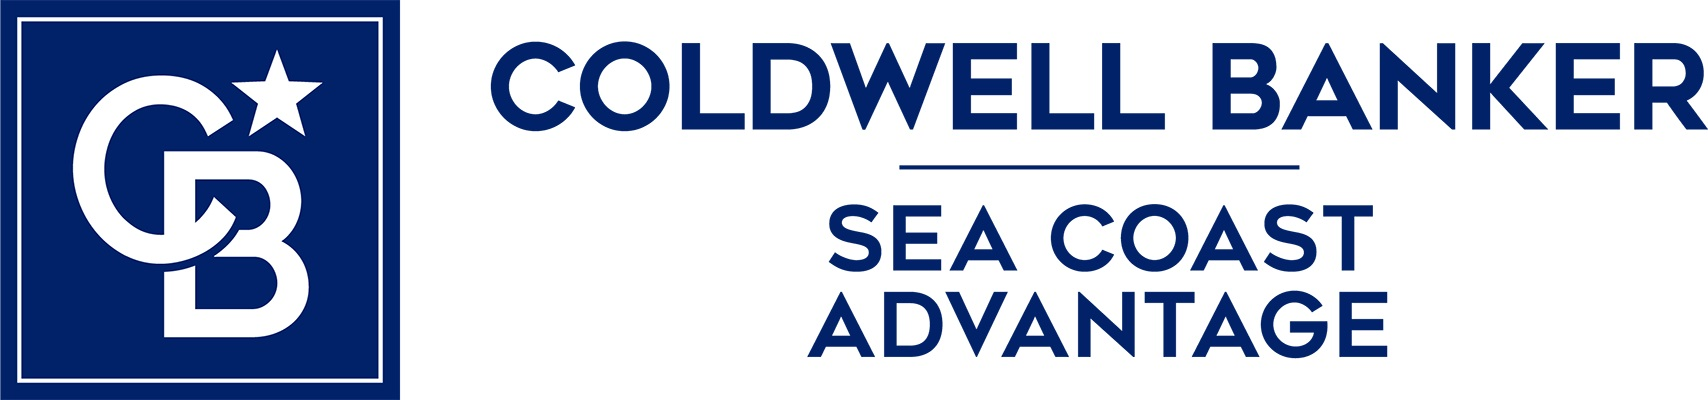 Mary Ann Dietrich - Coldwell Banker Sea Coast Advantage Realty